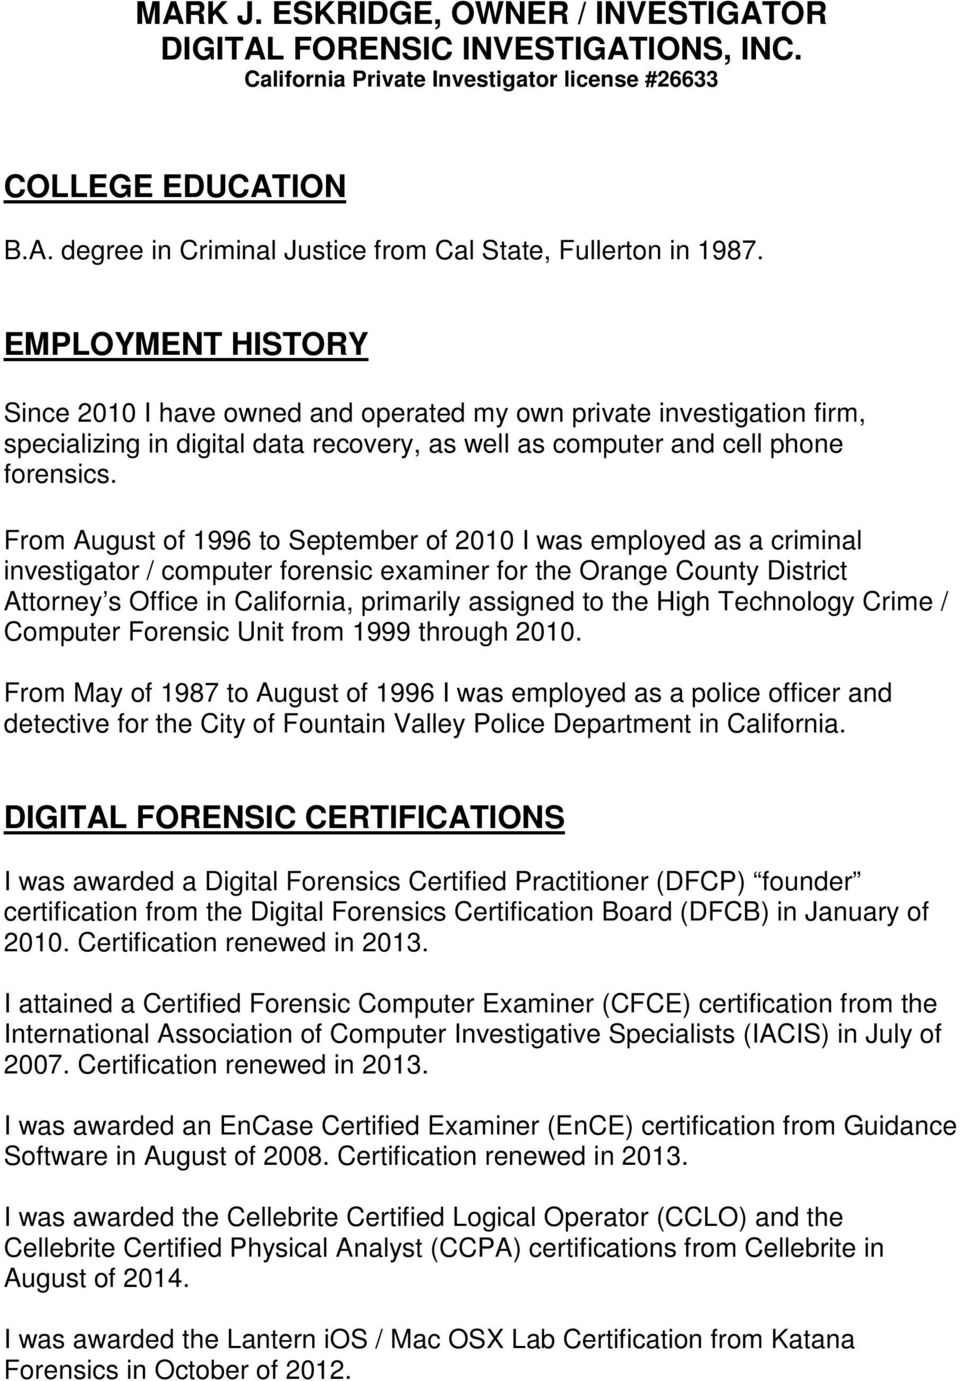 From August of 1996 to September of 2010 I was employed as a criminal investigator / computer forensic examiner for the Orange County District Attorney s Office in California, primarily assigned to